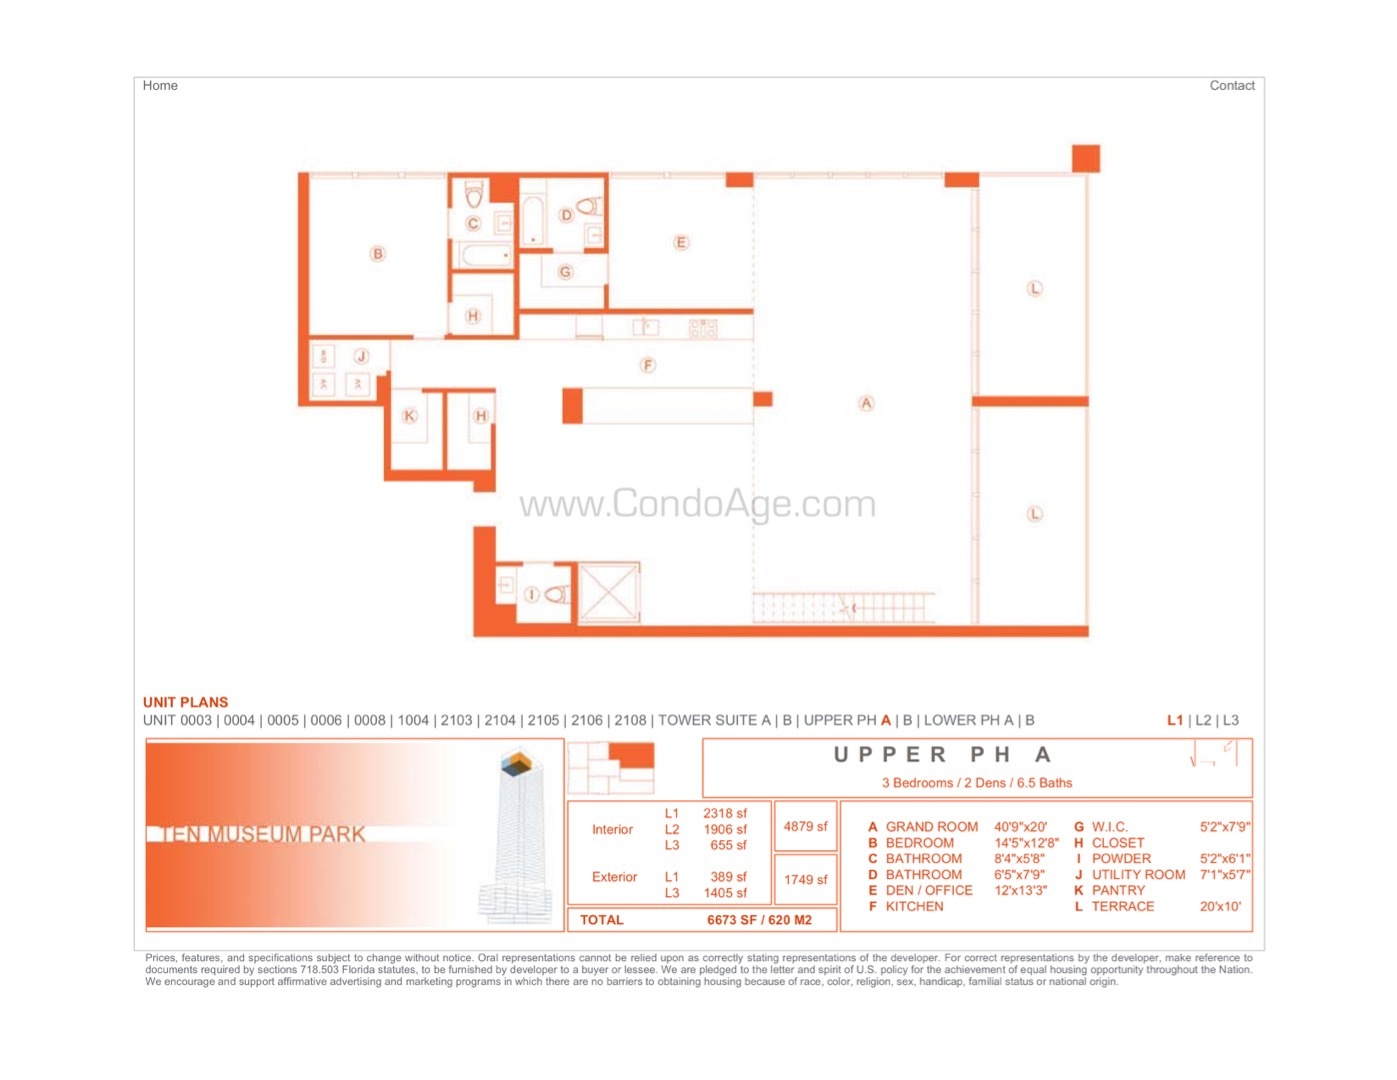 Floor plan image UPHA - 5/6/1  - 4879 sqft image